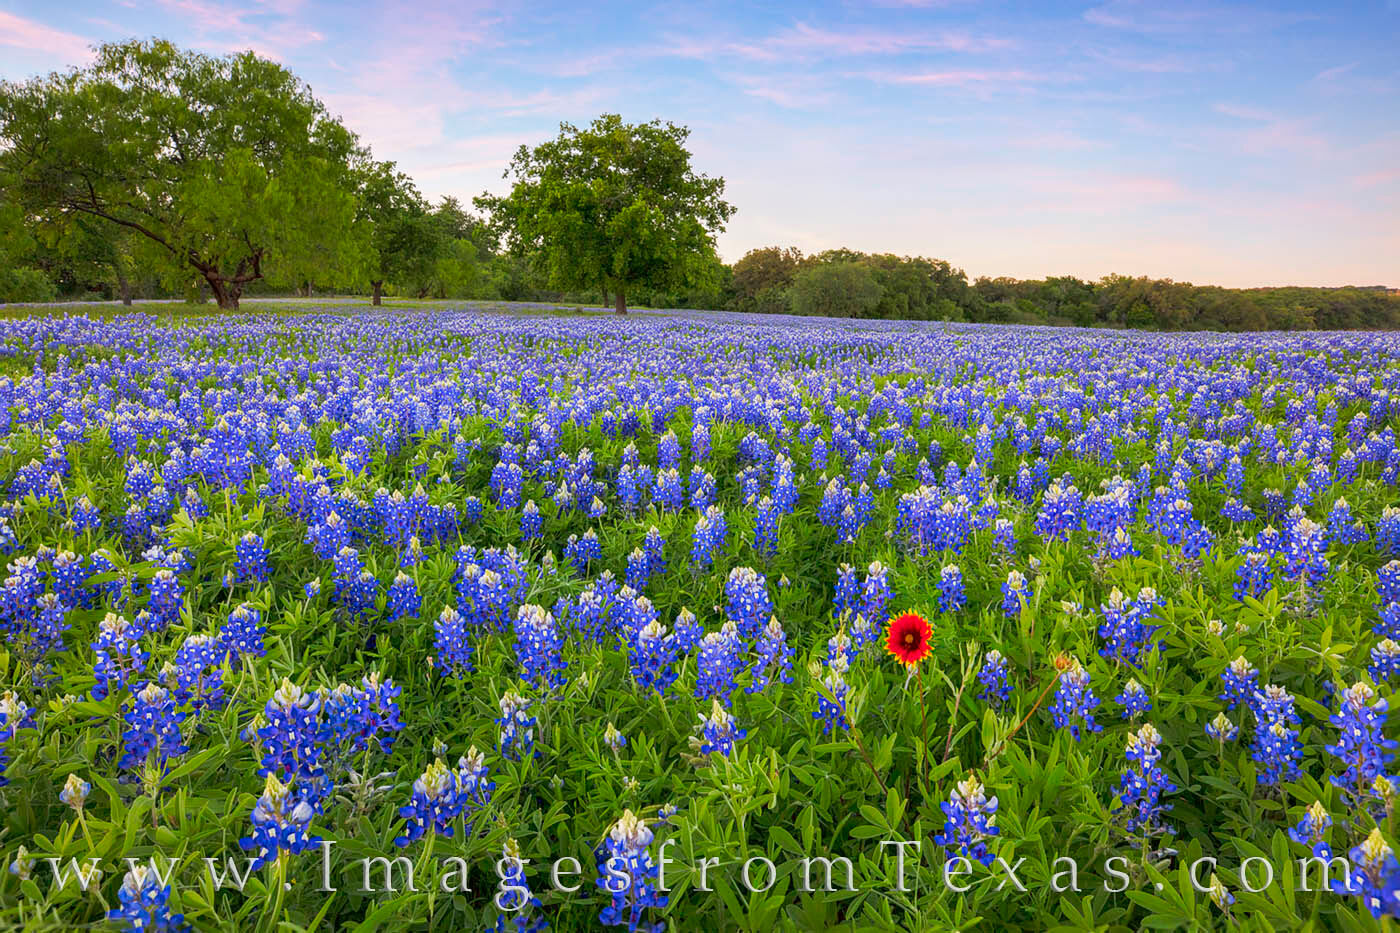 bluebonnets; bluebonnet photos; texas wildflowers; indian blankets; texas wildflower prints; texas hill country; marble falls; texas spring; spring landscape; texas landscapes, photo